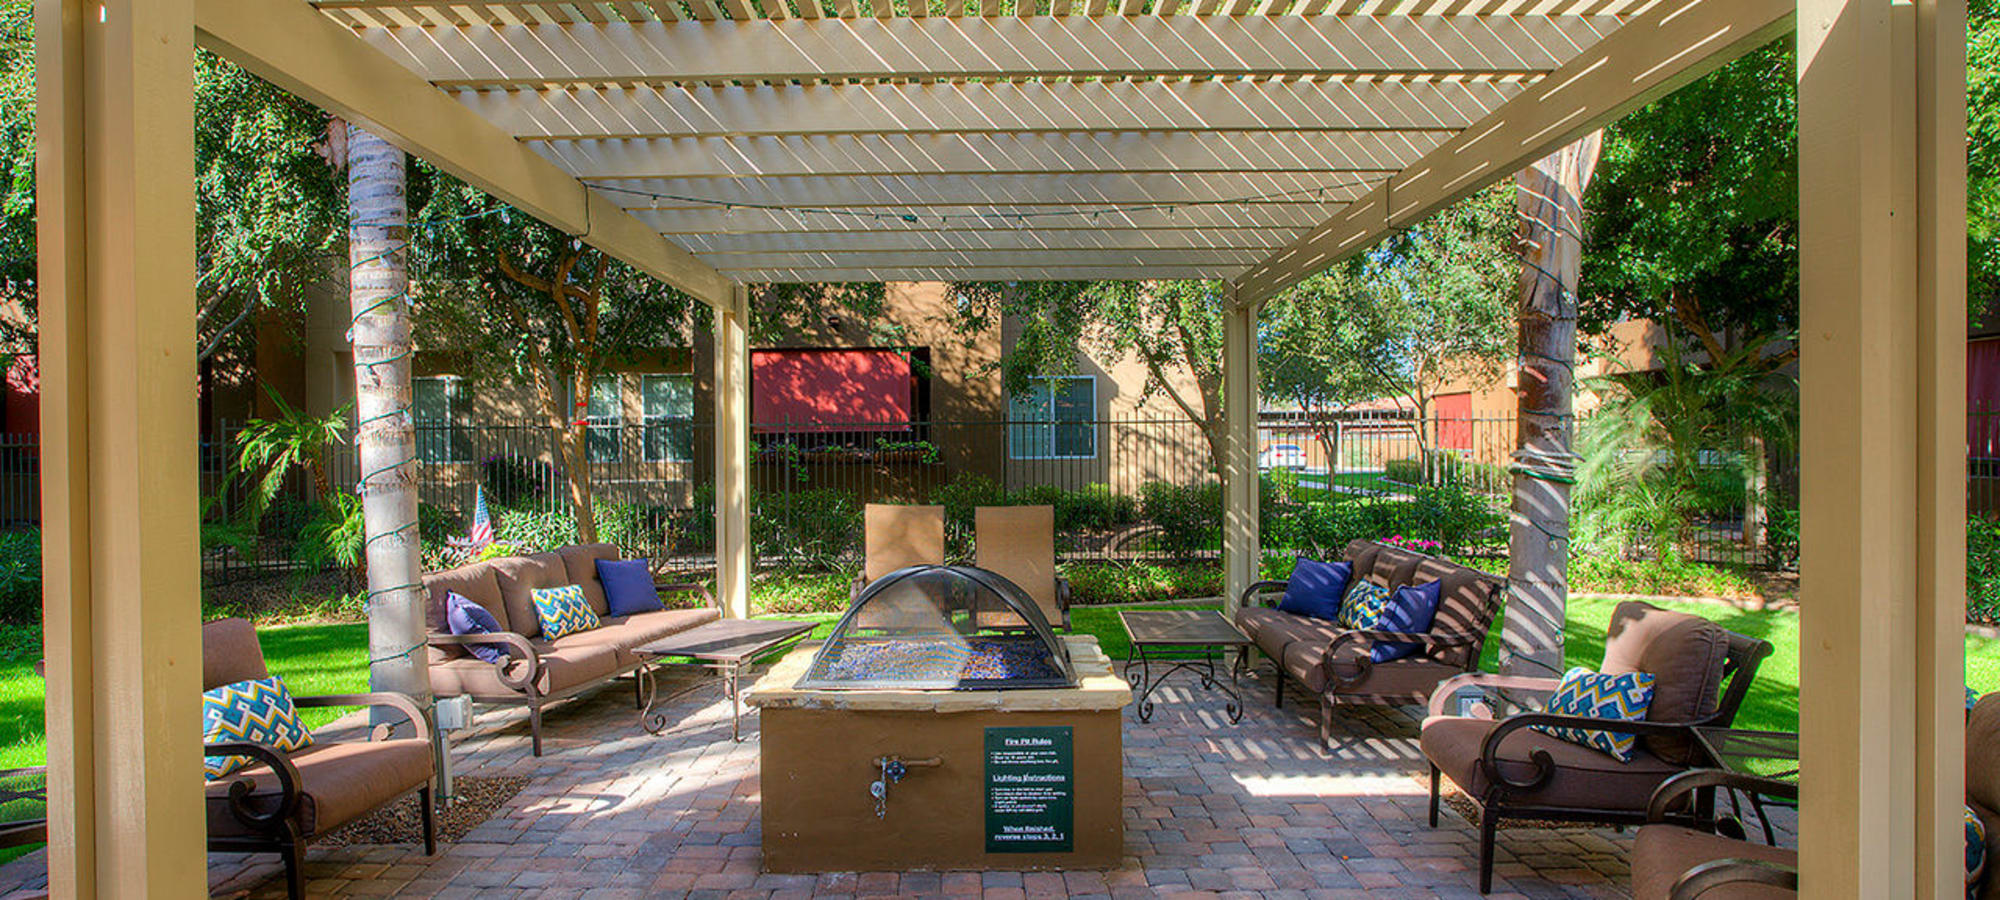 Shaded seating around a fire pit at Park on Bell in Phoenix, Arizona